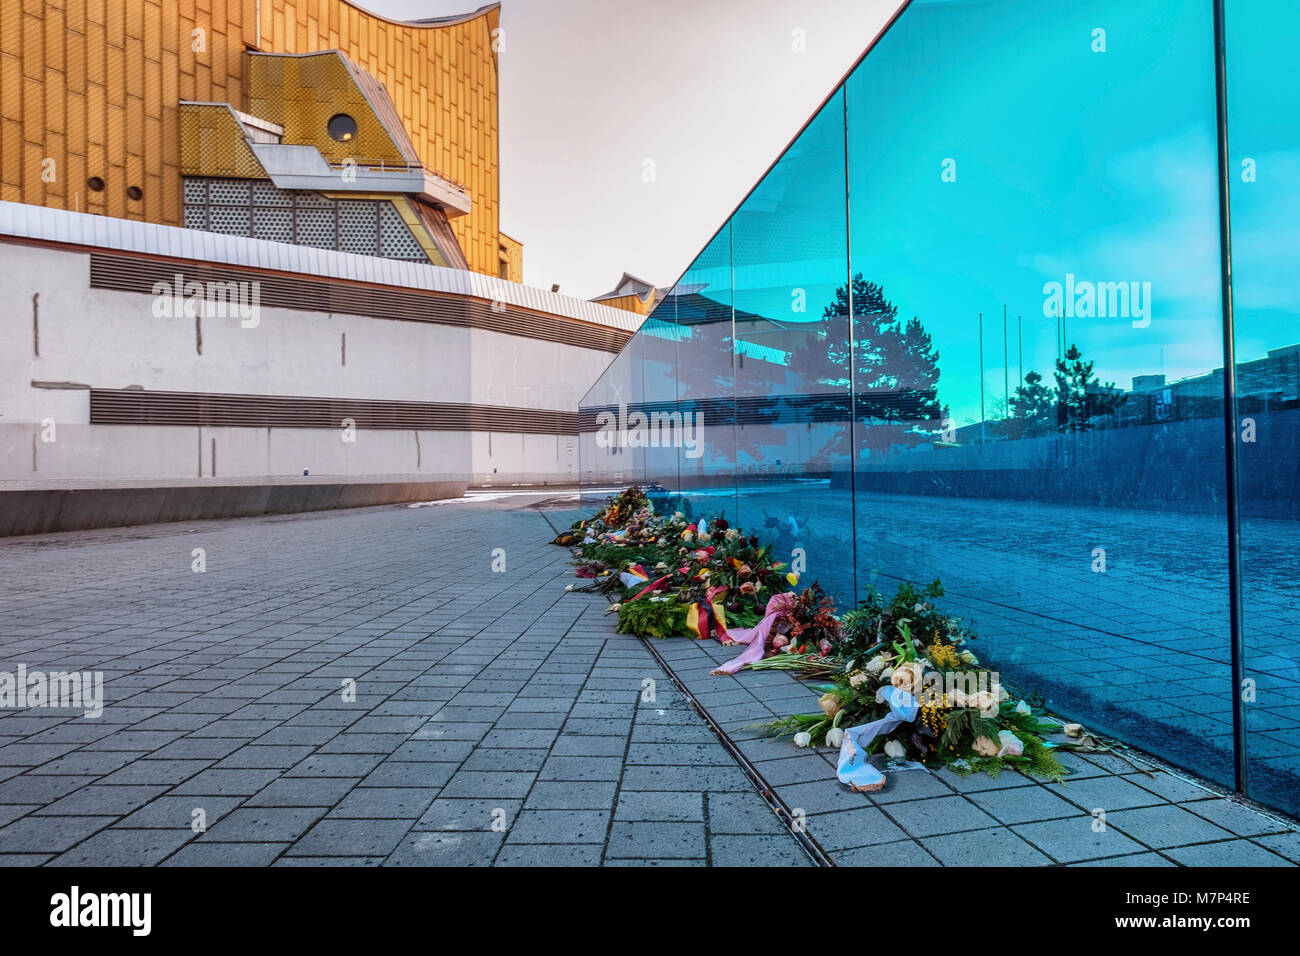 Berlin, Mitte. Blue glass wall Memorial in front of Berlin Philharmonic Concert hall. Monument to disabled victims - Stock Image